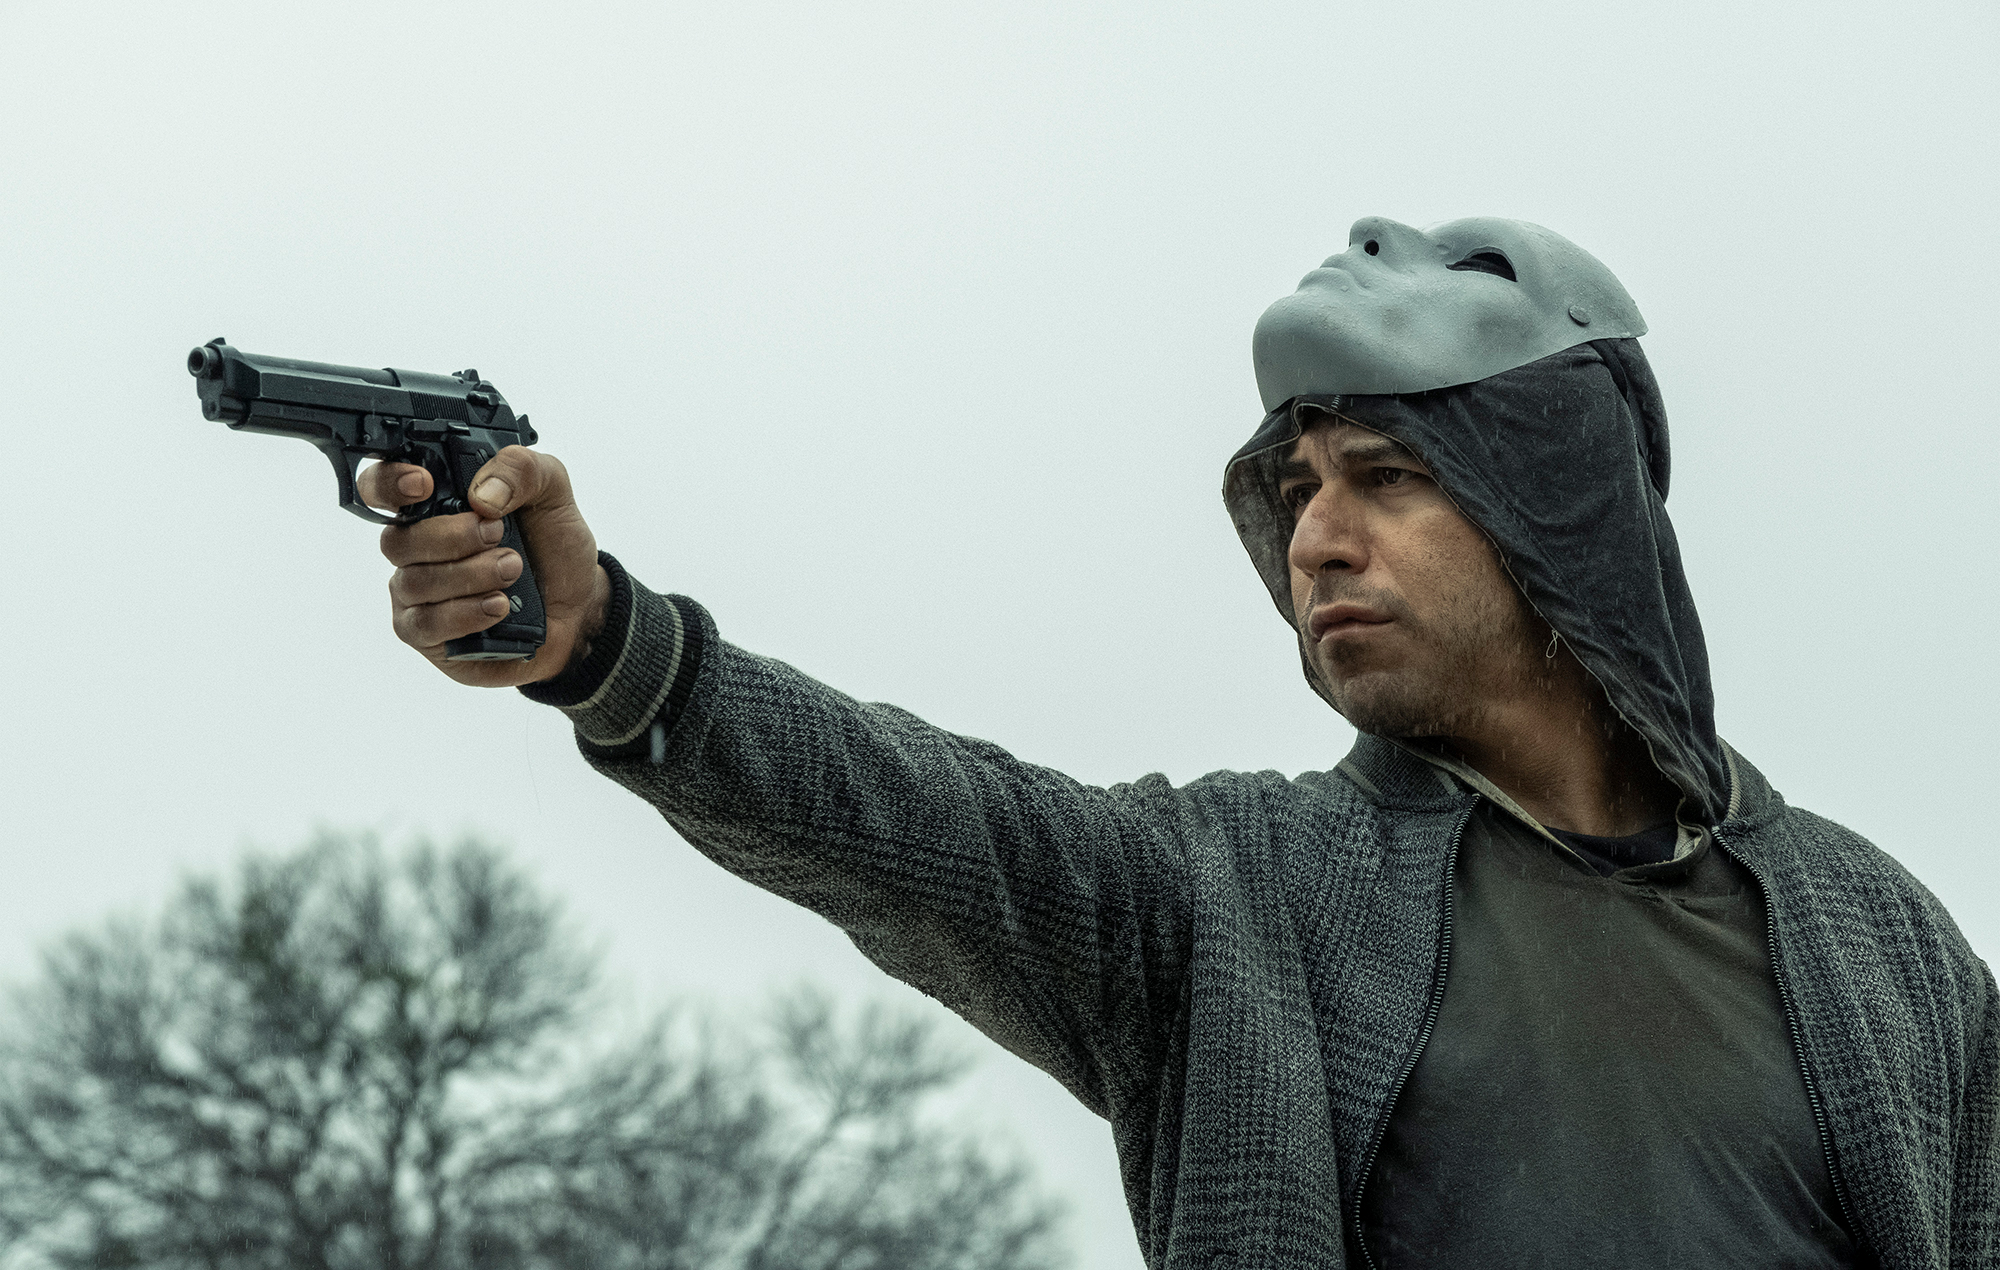 Fear The Walking Dead season 6 episode 5